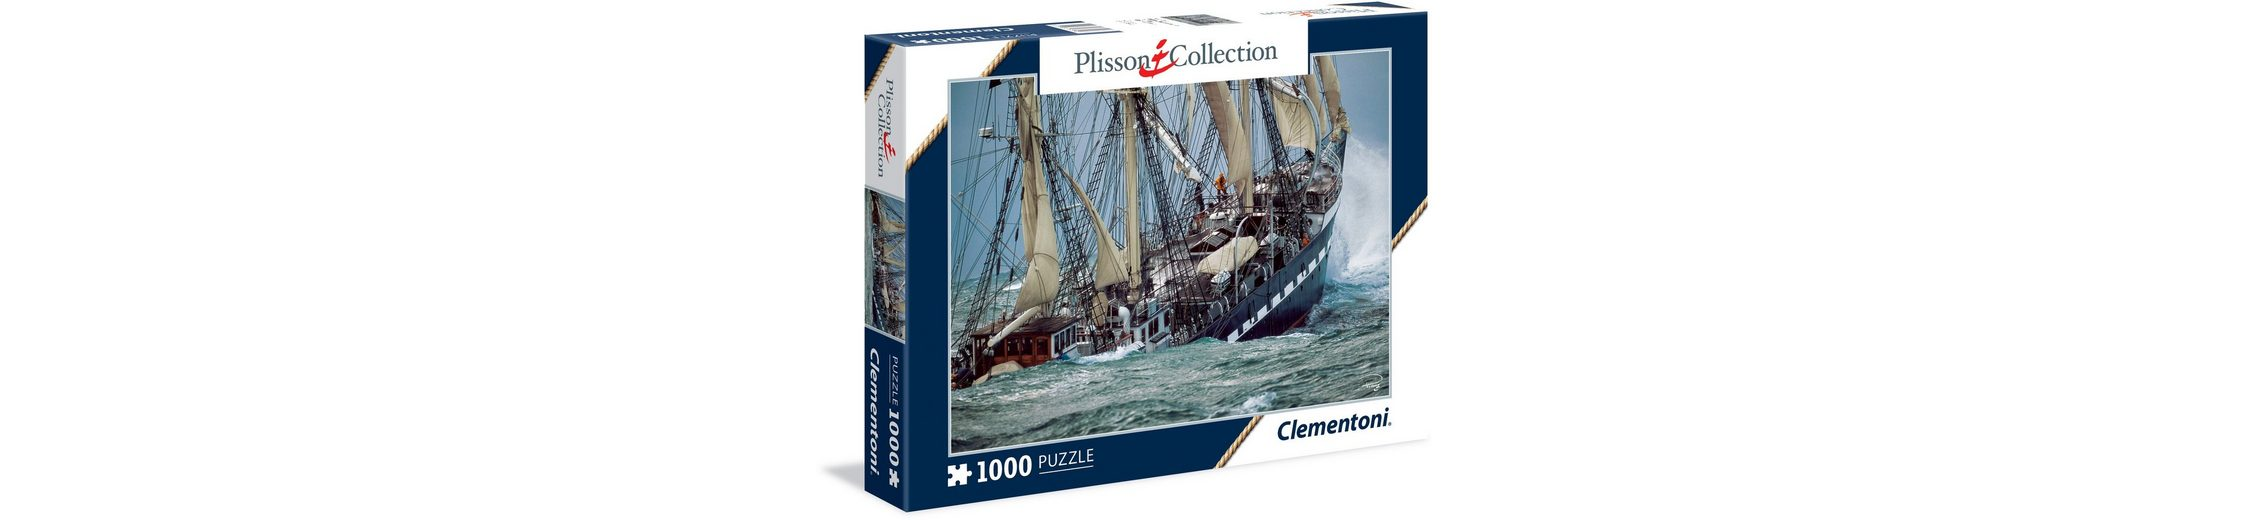 Clementoni Puzzle, 1000 Teile, »Plisson Belem, the last French tall ship«